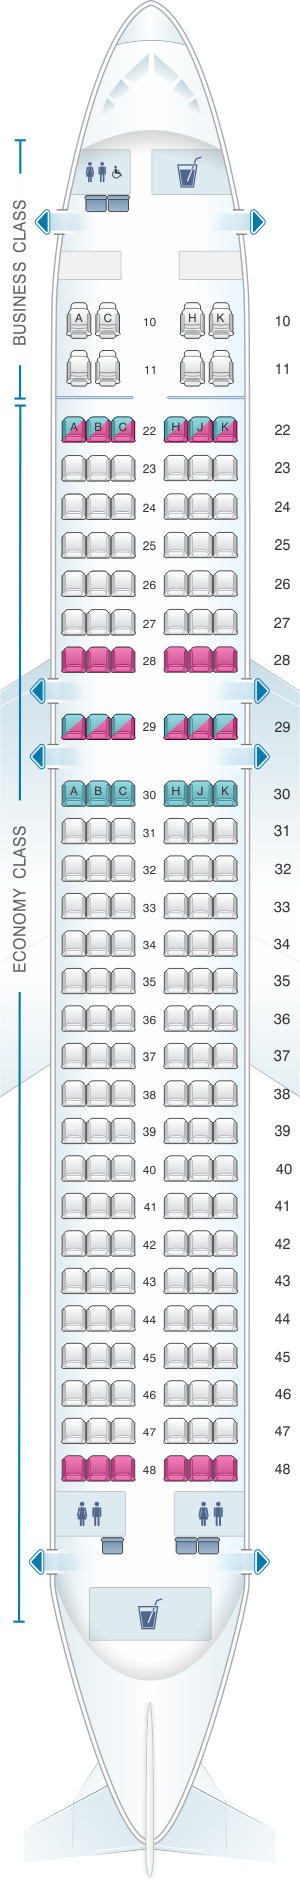 Seat map for Cathay Pacific Airways Cathay Dragon Airbus A320 200